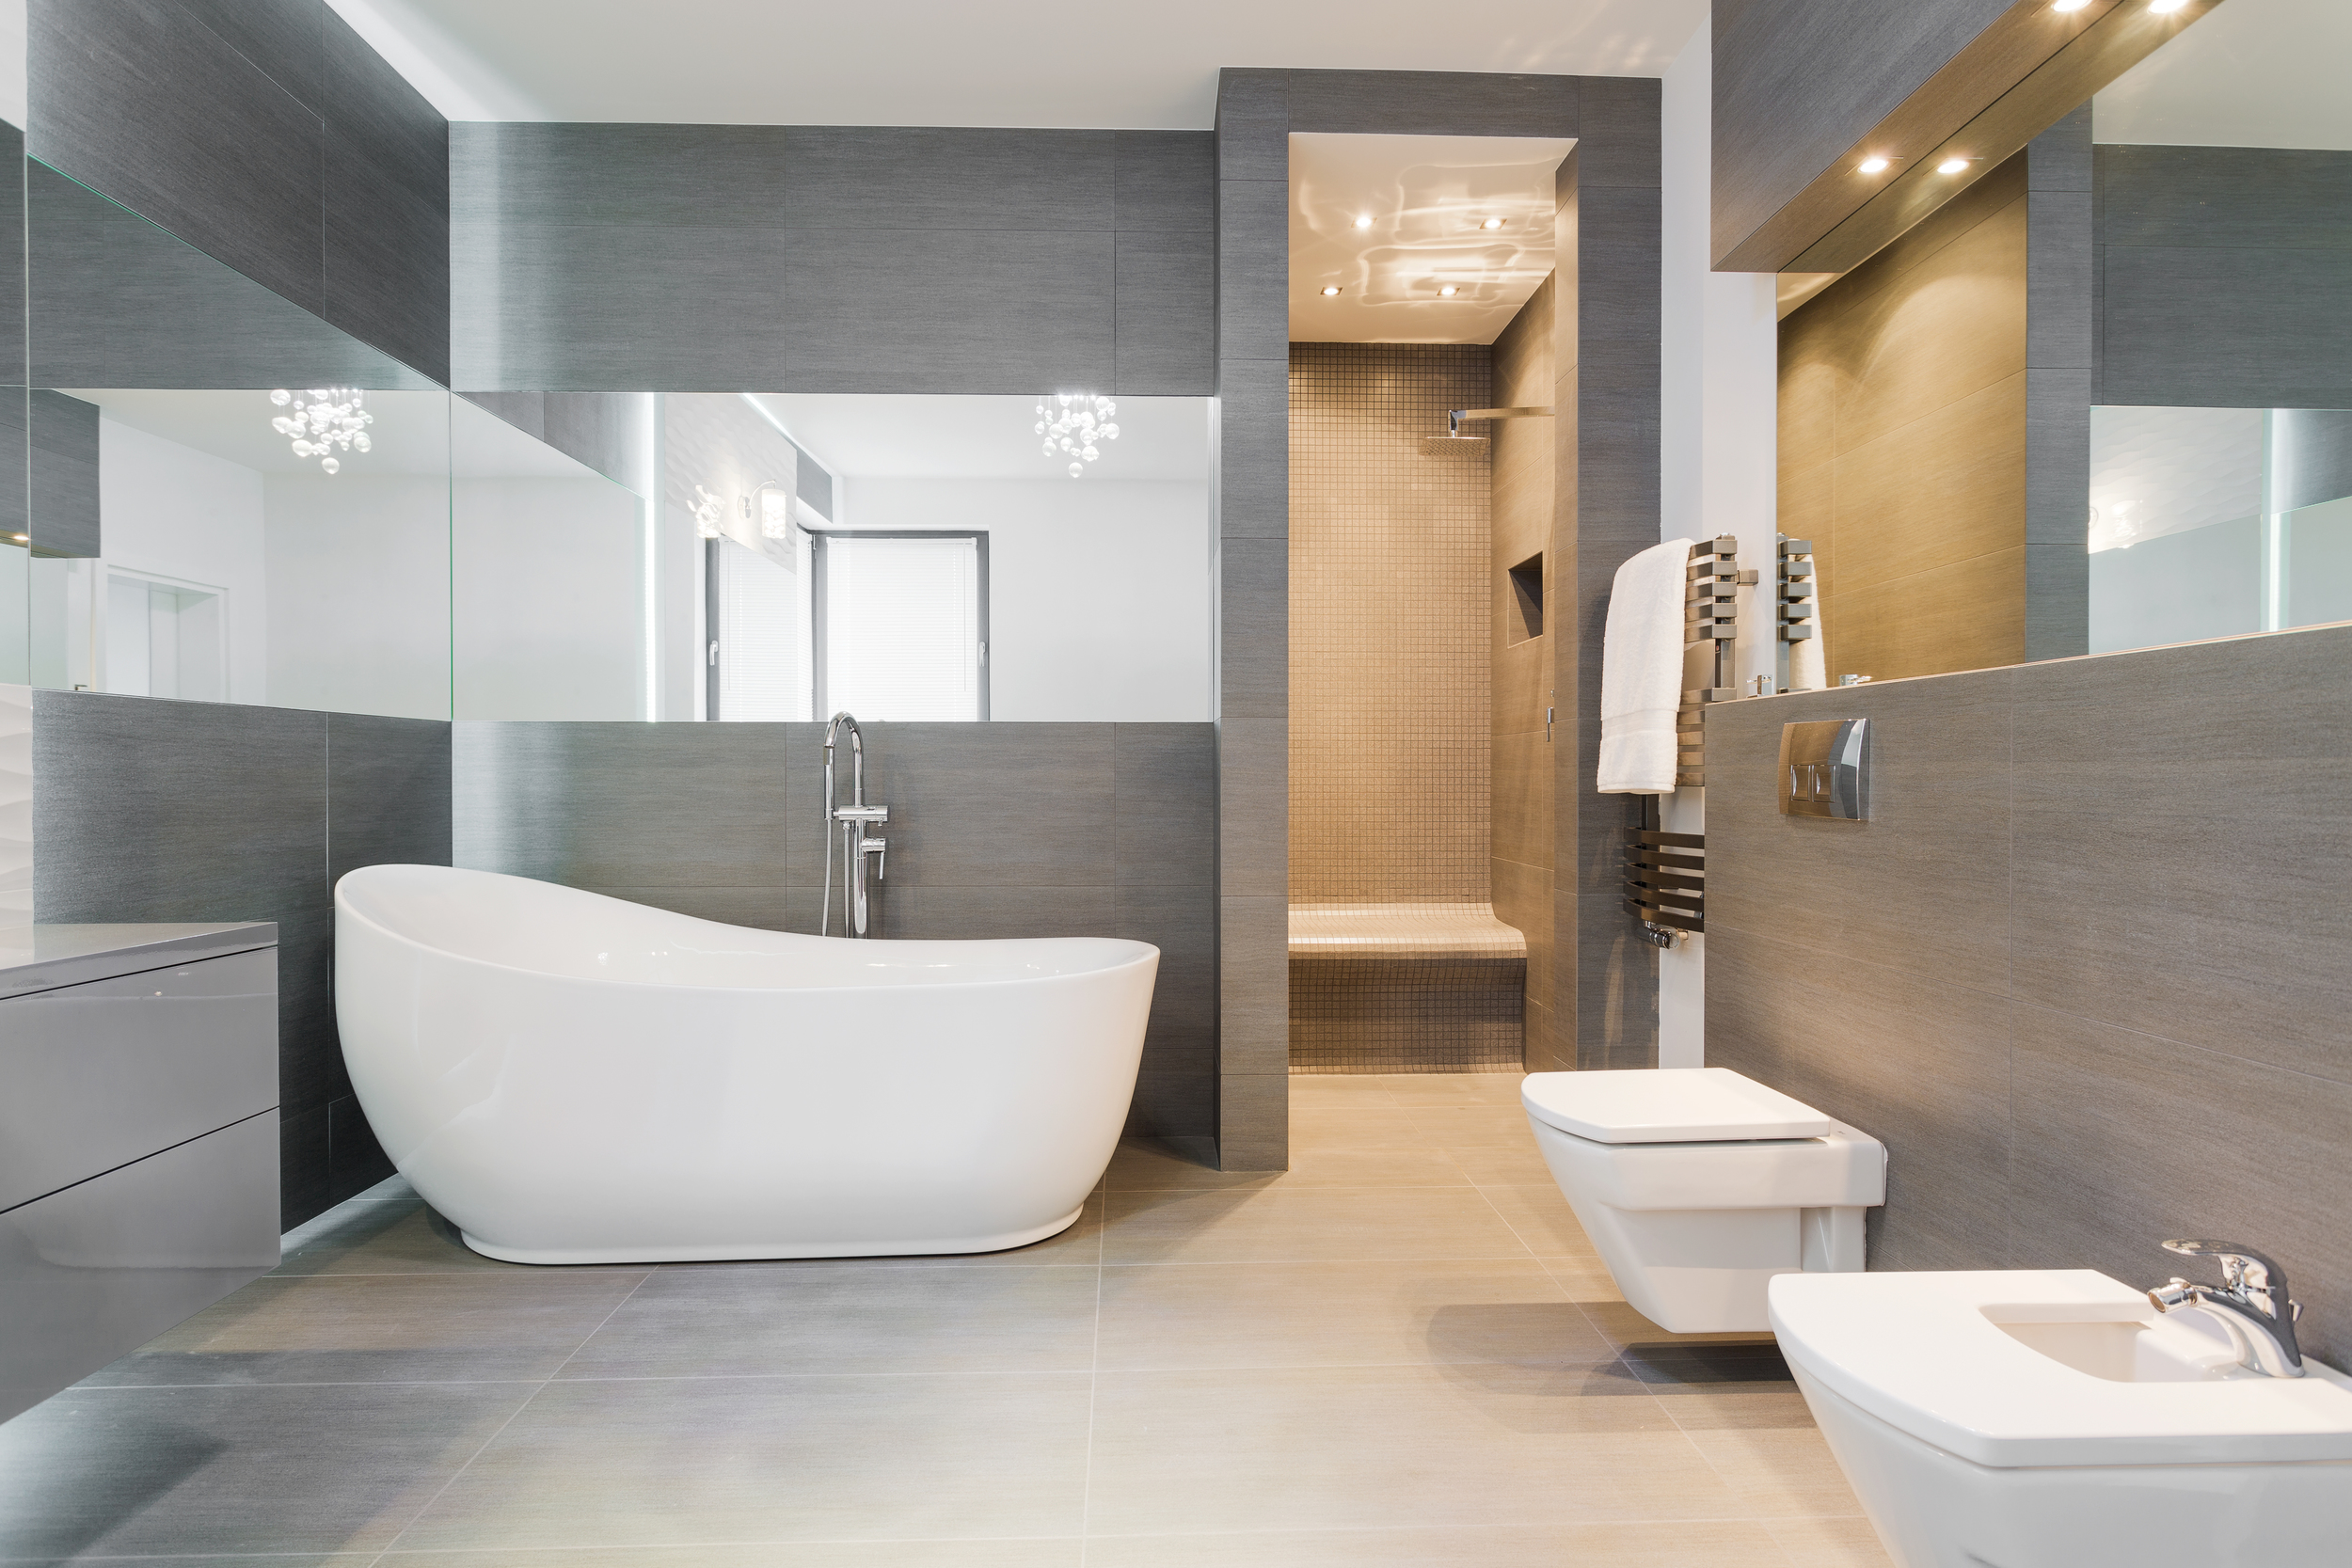 Large modern bathroom with grey tile, tub, walk-in shower, and wrap around mirrors